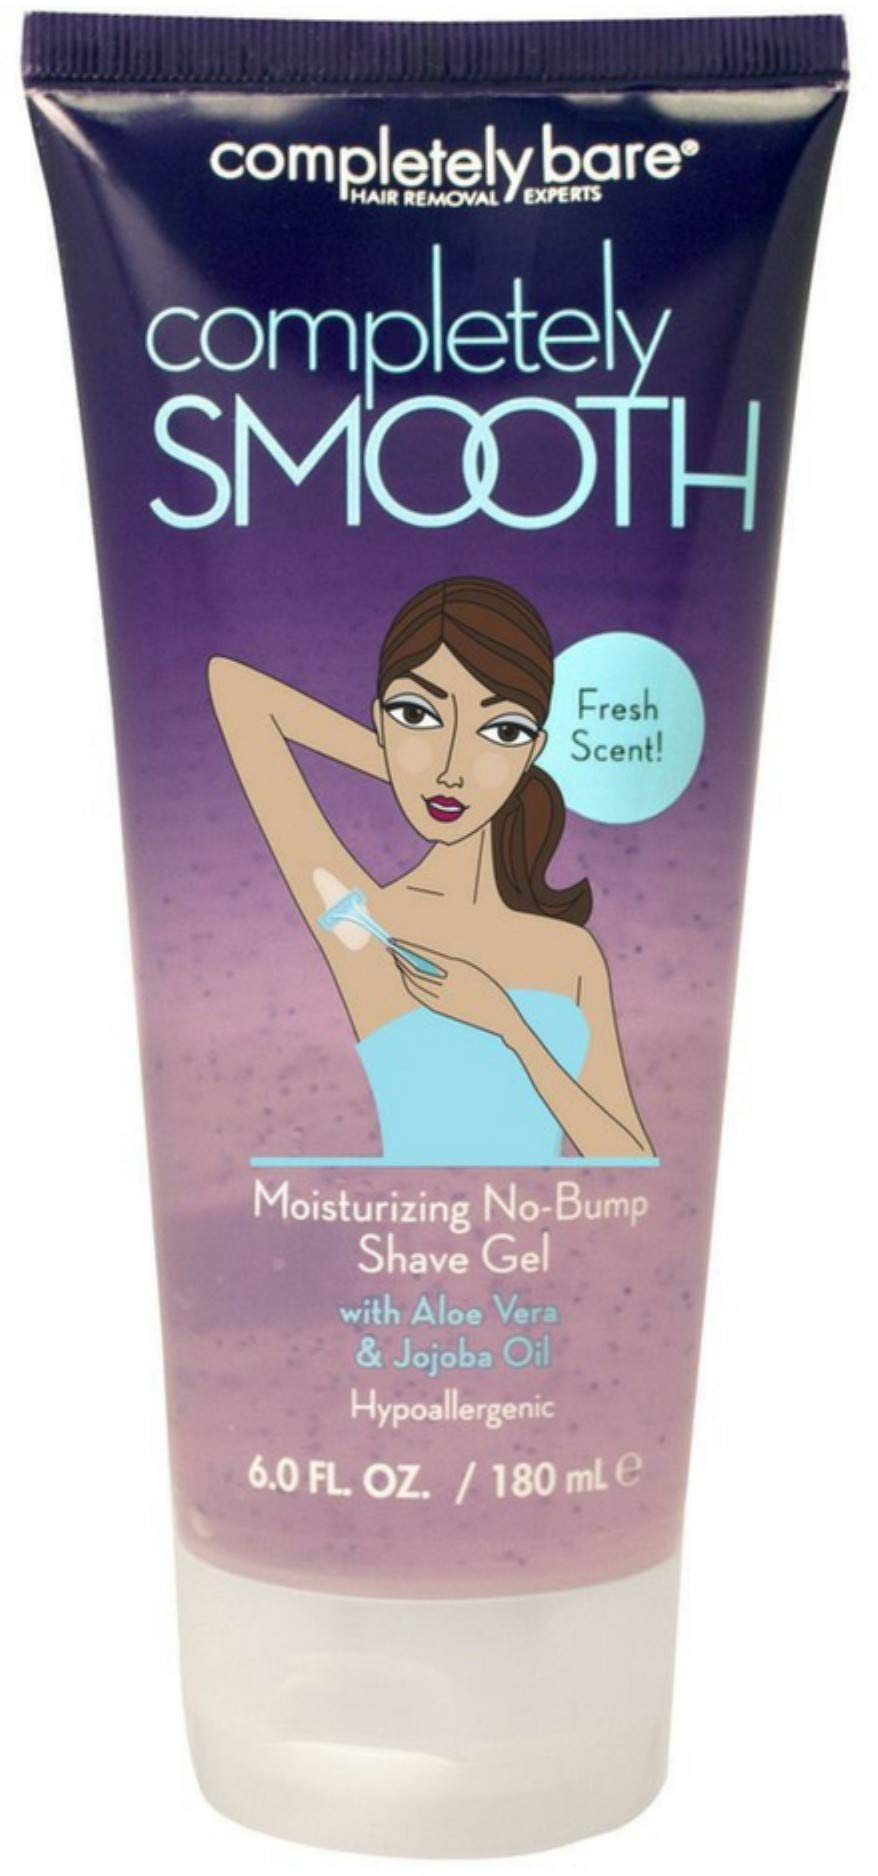 Completely Bare completely SMOOTH Moisturizing No-Bump Shave Gel with Aloe Vera & Jojoba Oil, Fresh Scent - Chamomile Extract, Hypoallergenic Formula 6.0 oz